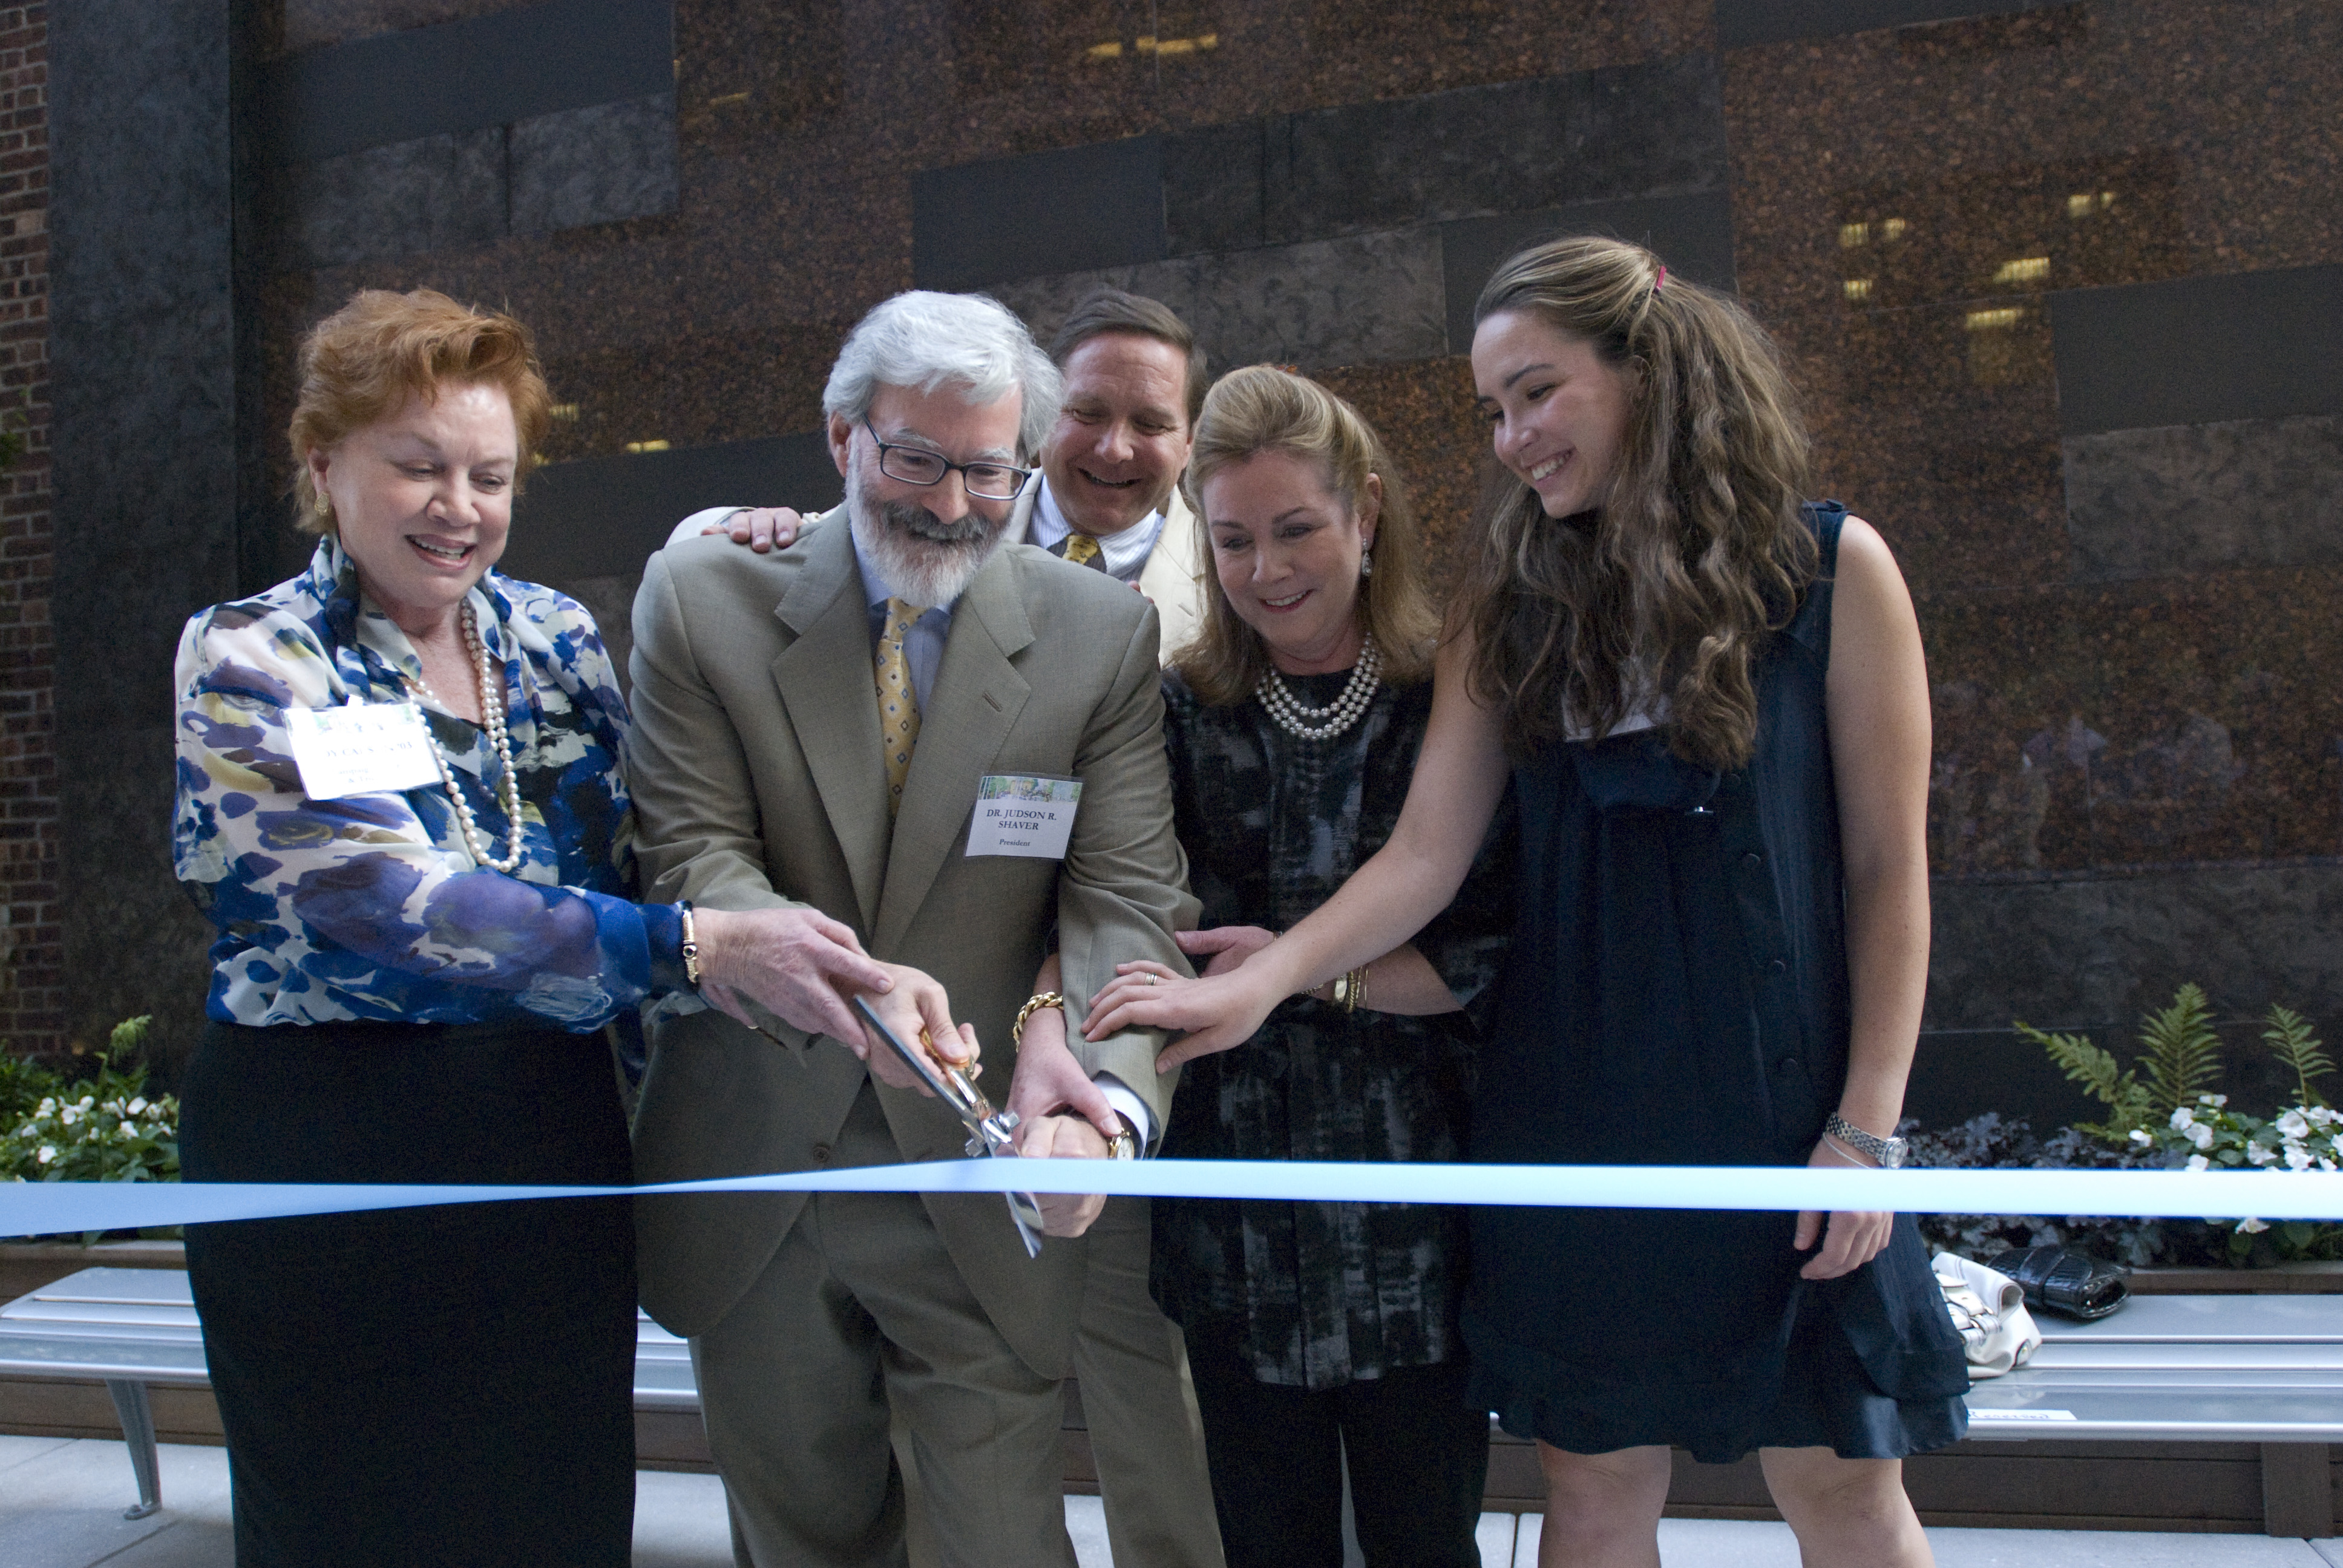 Outdoor ribbon-cutting ceremony with five people.